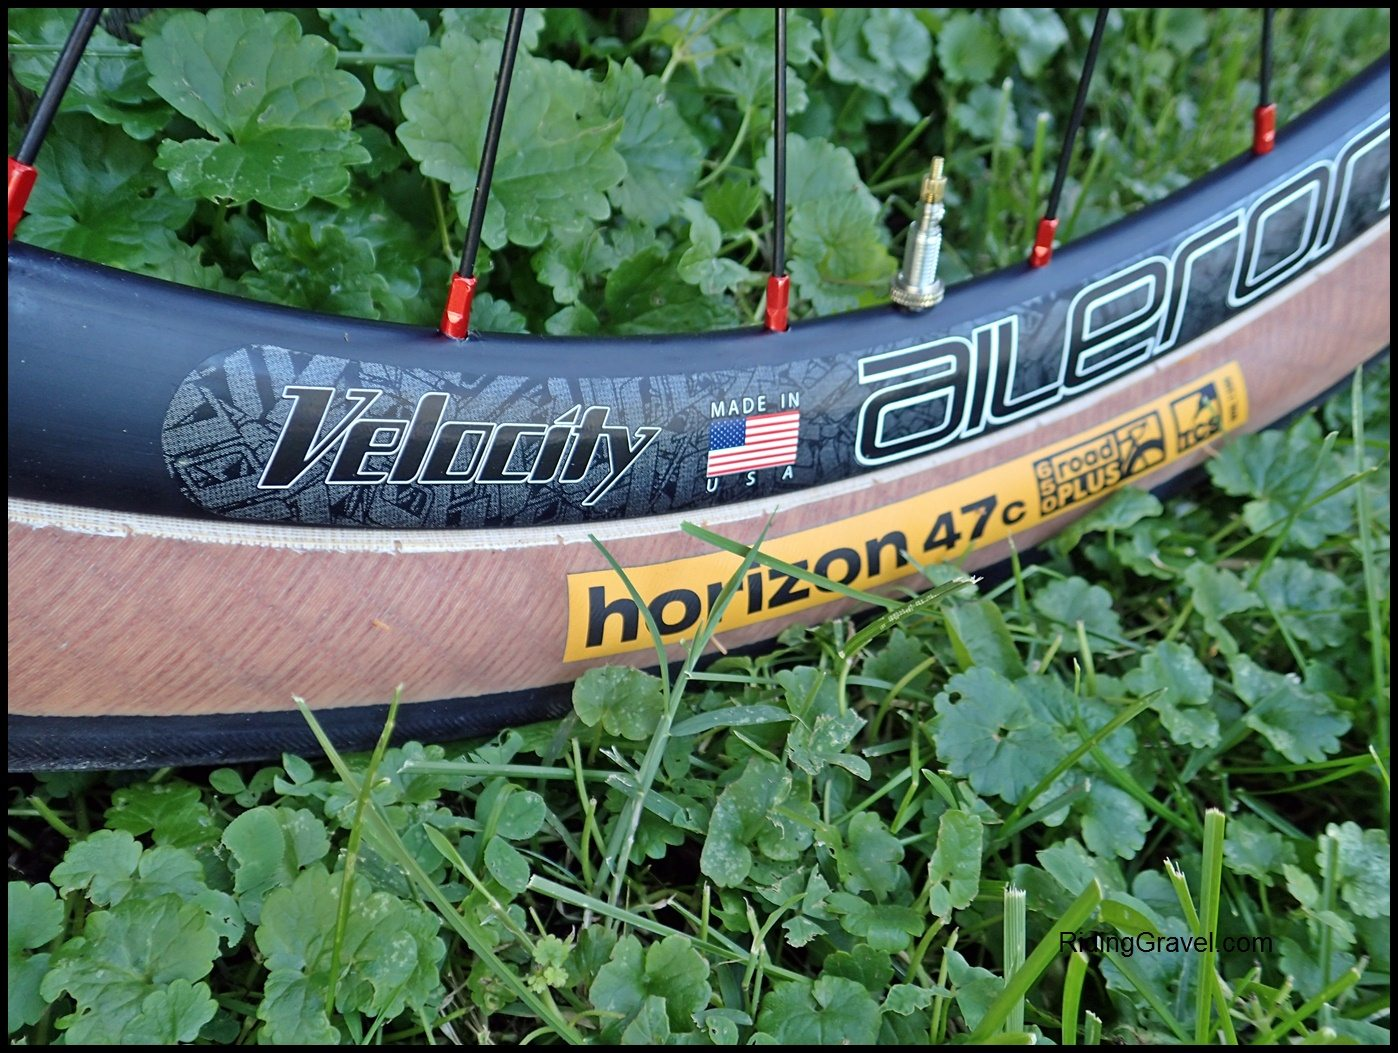 WTB Horizon 47 Tires: At The Finish